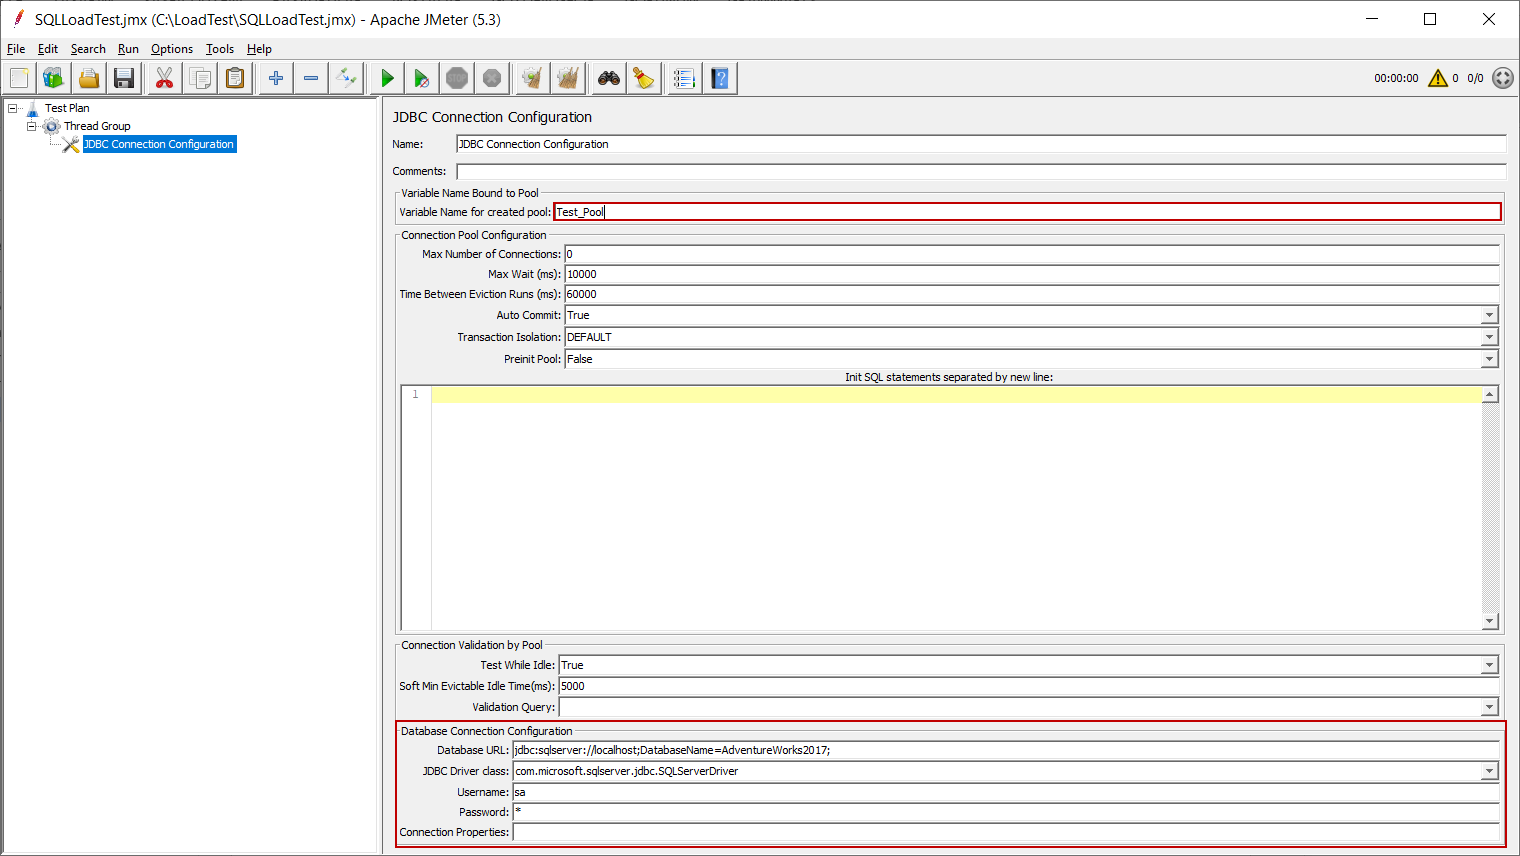 Configuring the JDBC Connection Configuration